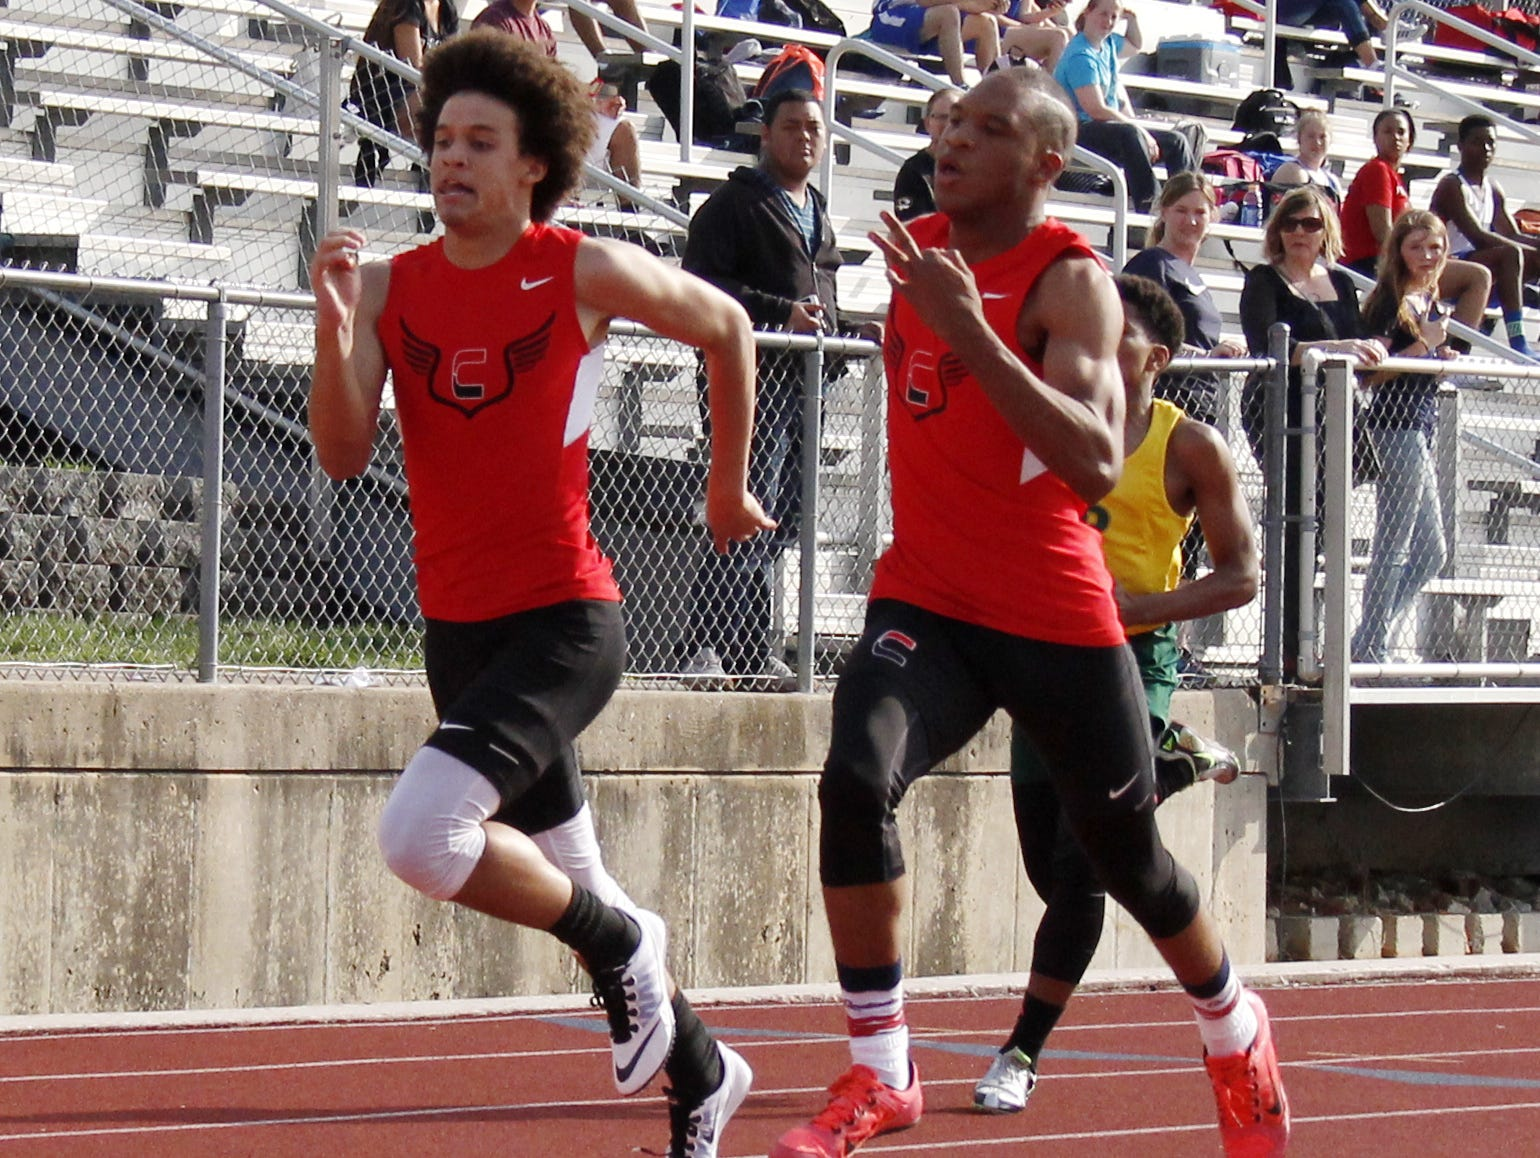 From left, Central freshman Quintin Batson and senior Lyndon Heard raced to a photo finish at the All-City warm up track and field meet Thursday at JFK Stadium, with Heard edging Batson at the finish line.